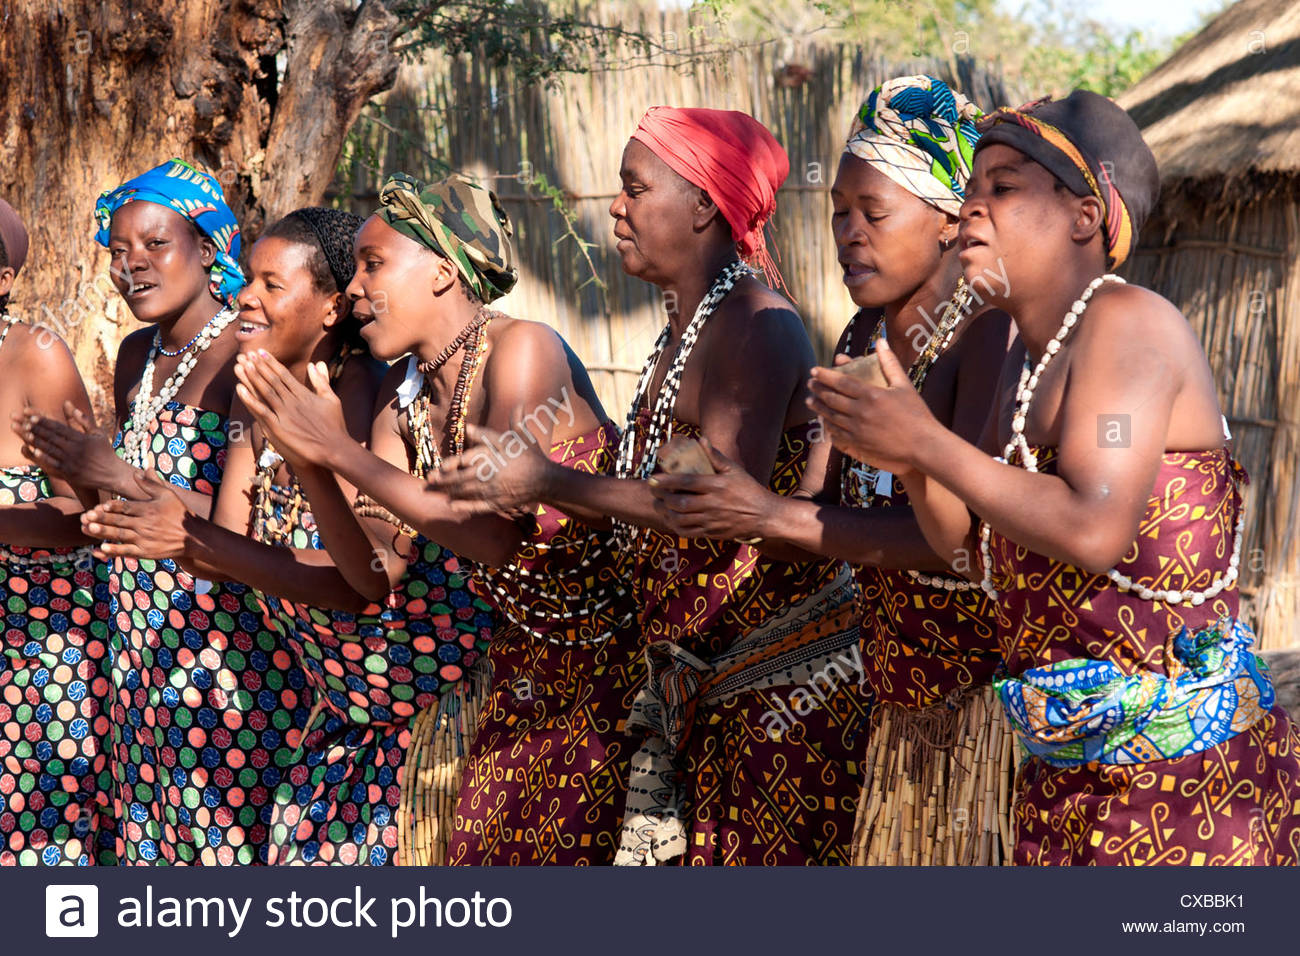 Villagers dancing in motion, Kxoe village, Kwando river area, Caprivi Strip, eastern Namibia, Africa - Stock Image